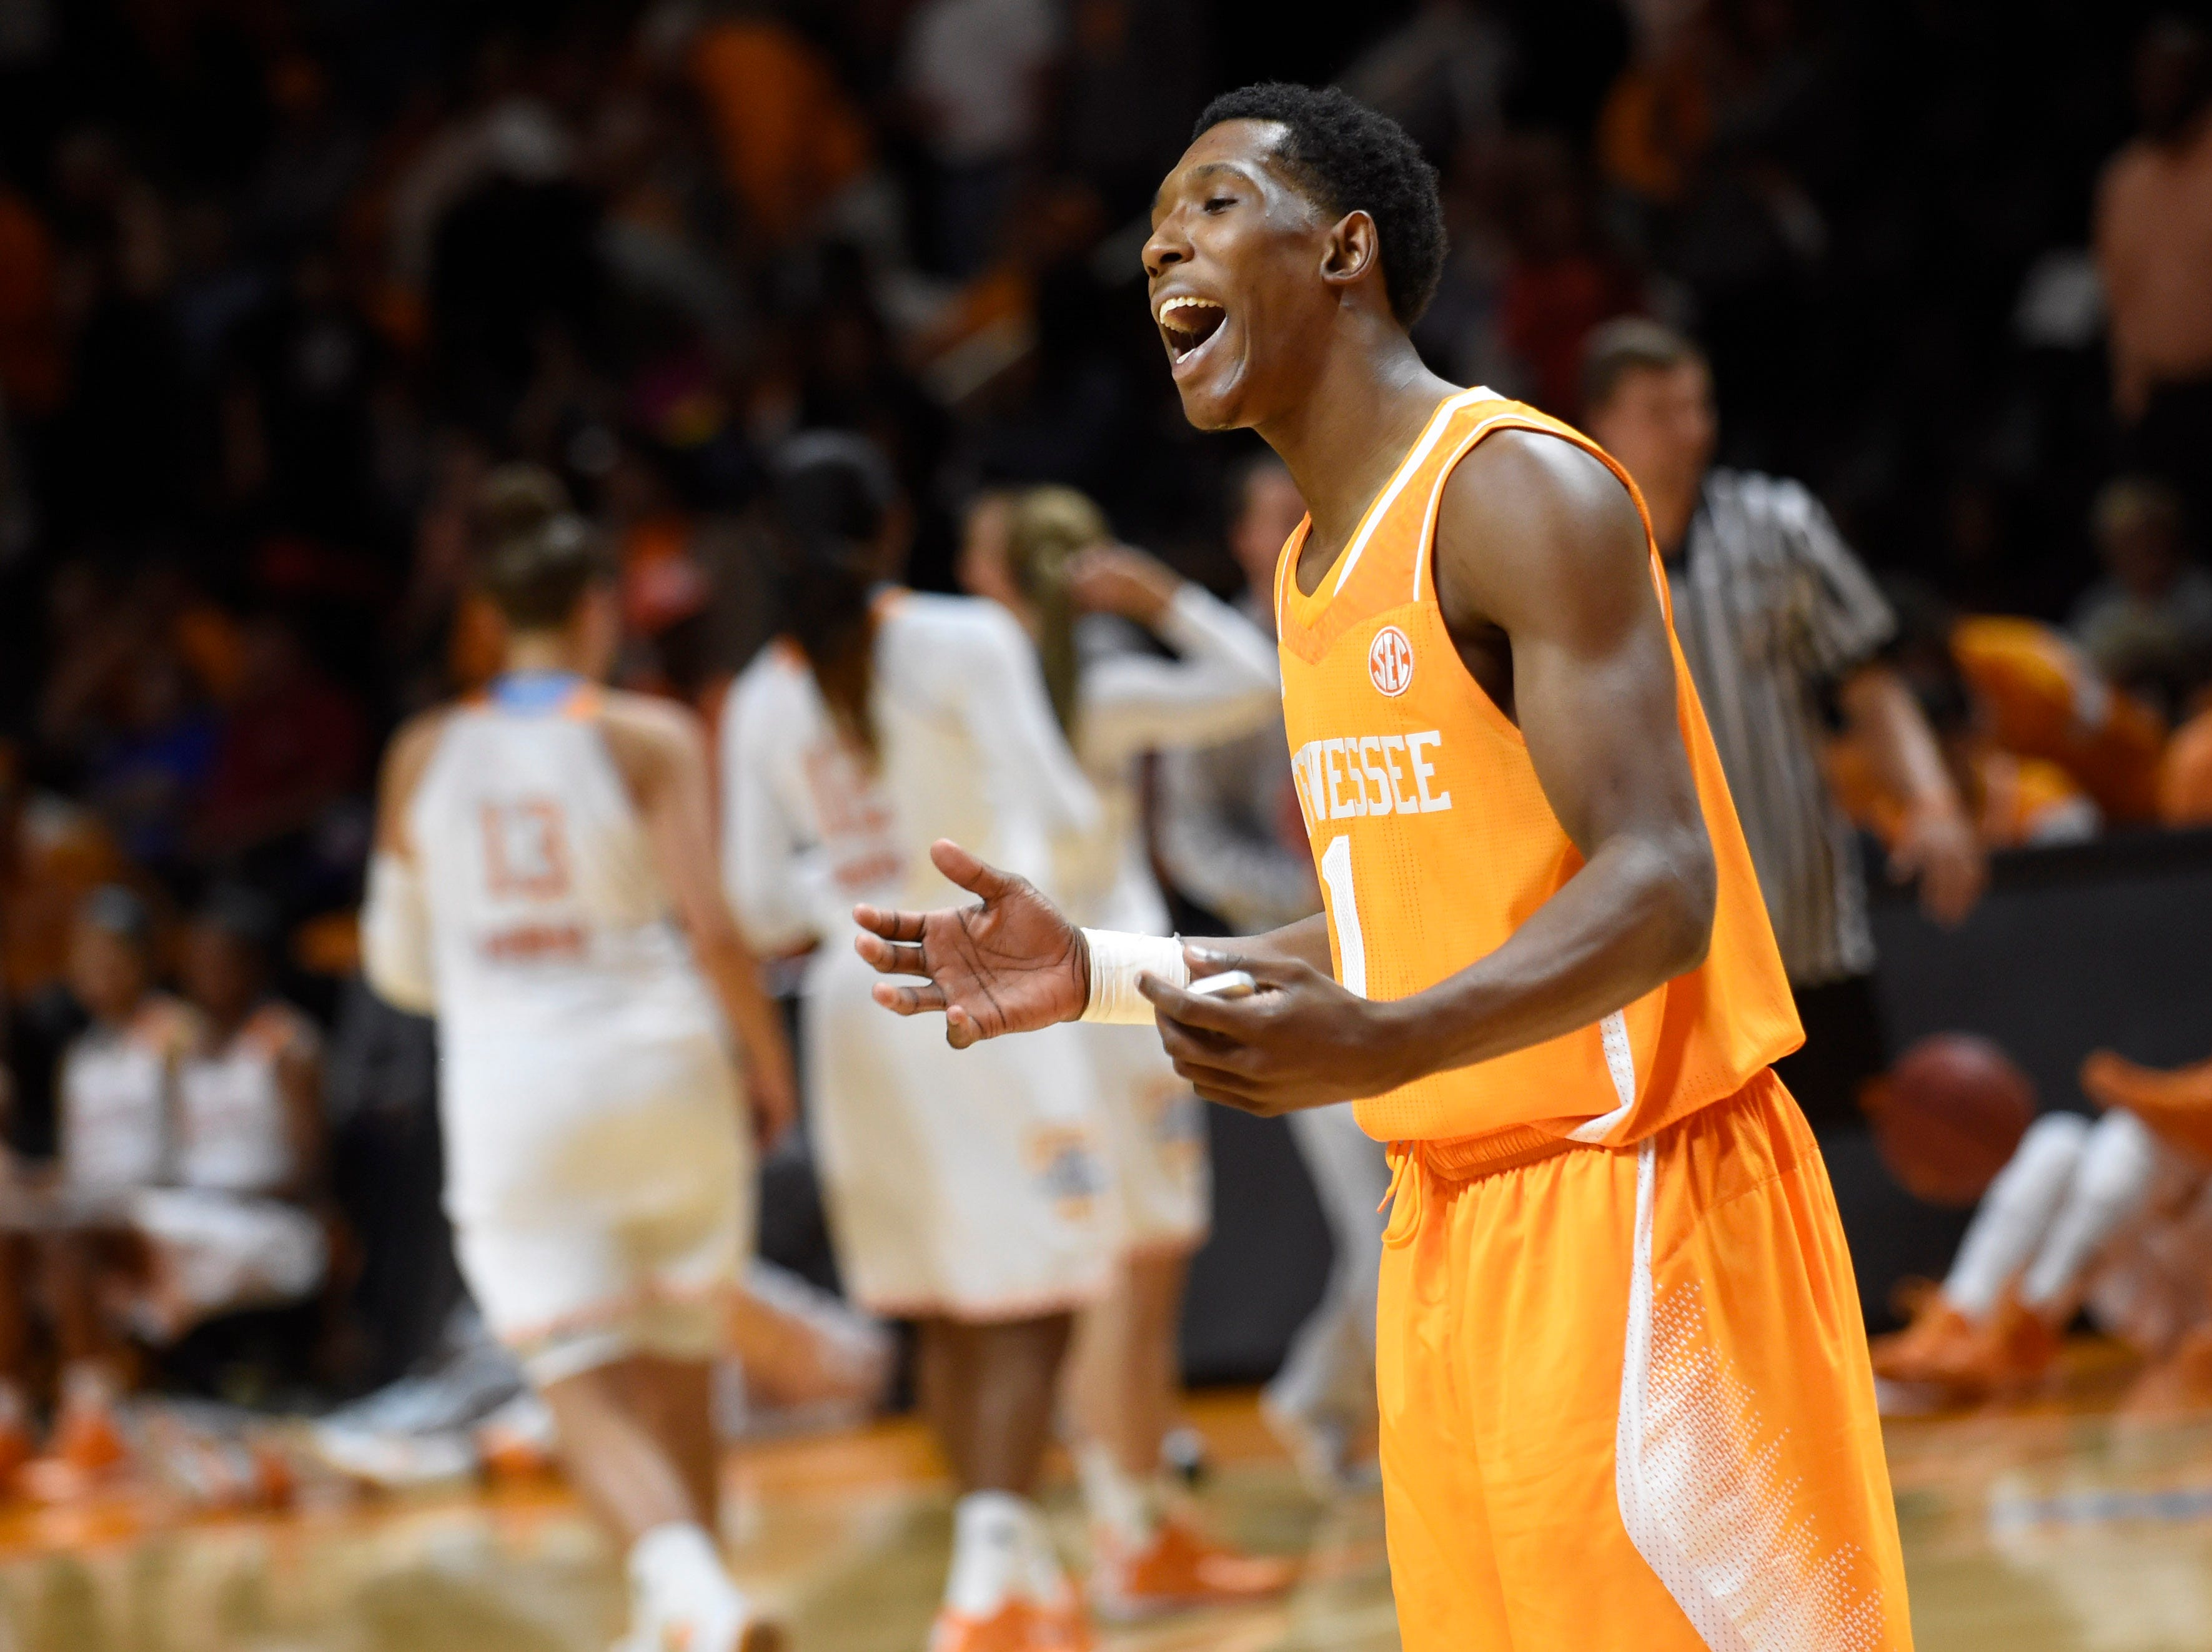 Tennessee basketball senior Josh Richardson (1) reacts to fans during Big Orange Madness at Thompson-Boling Arena on Friday, Oct. 24, 2014.